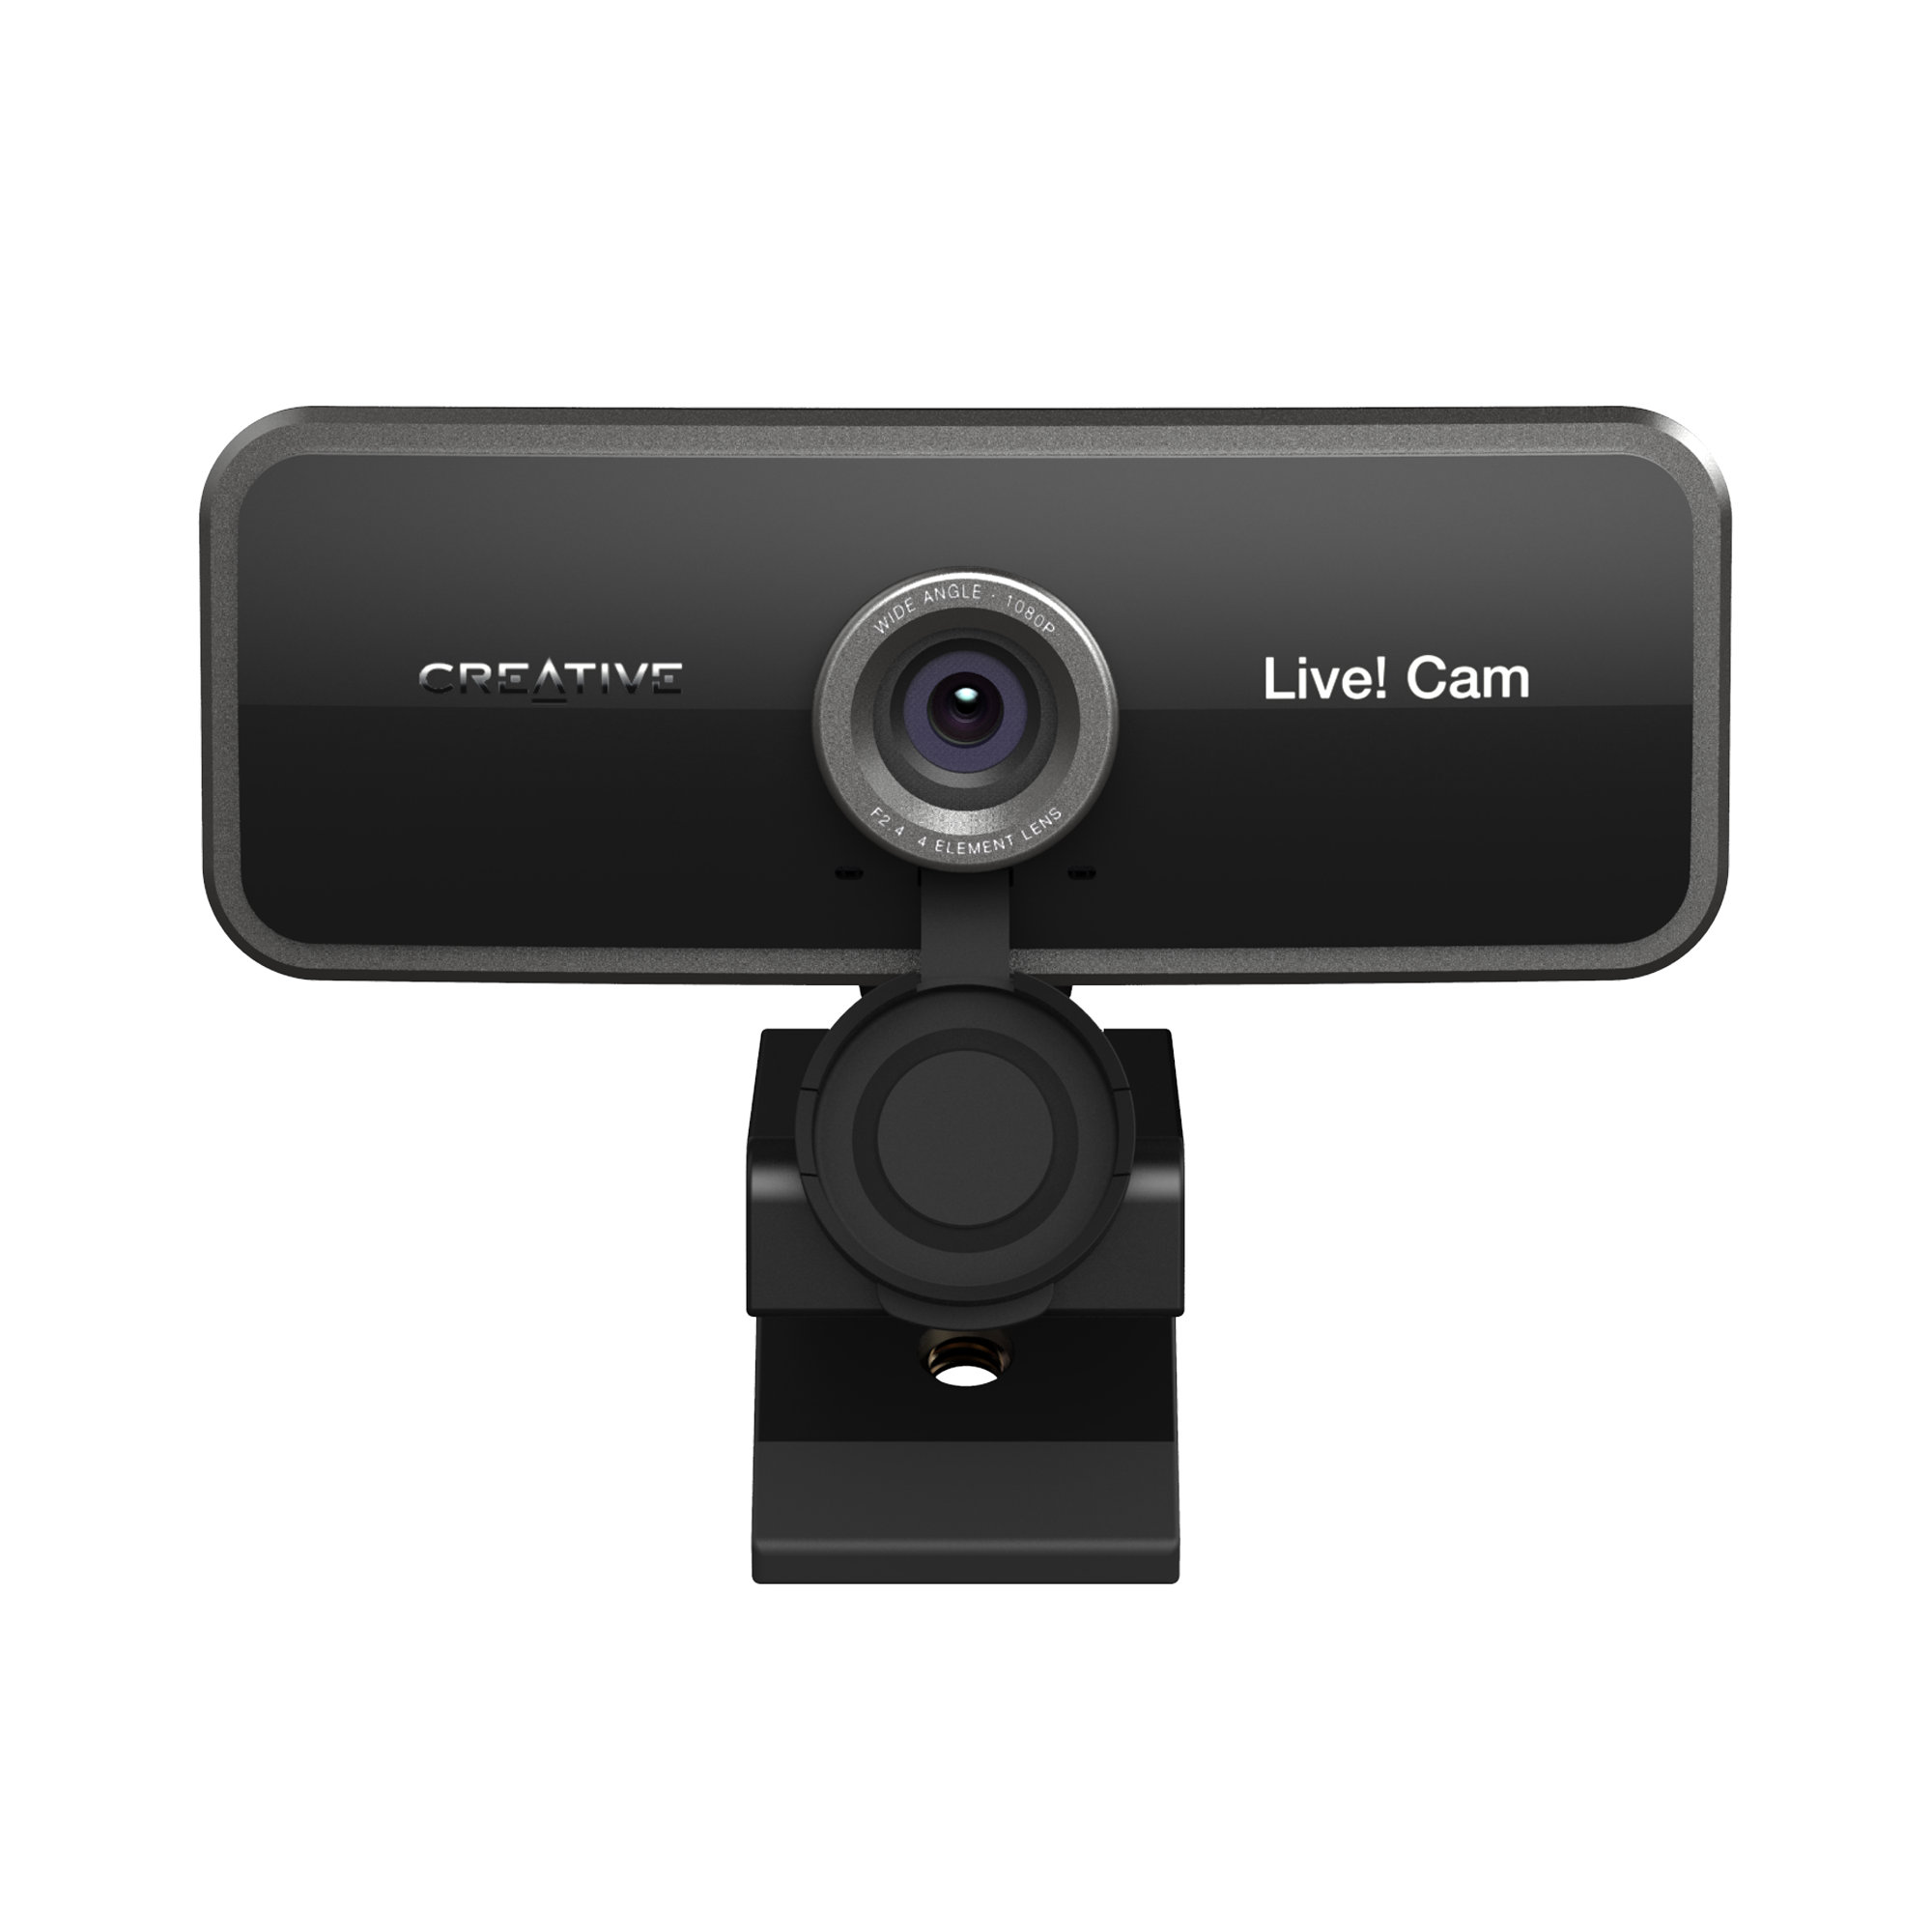 Image of Creative Live! Cam Sync 1080p